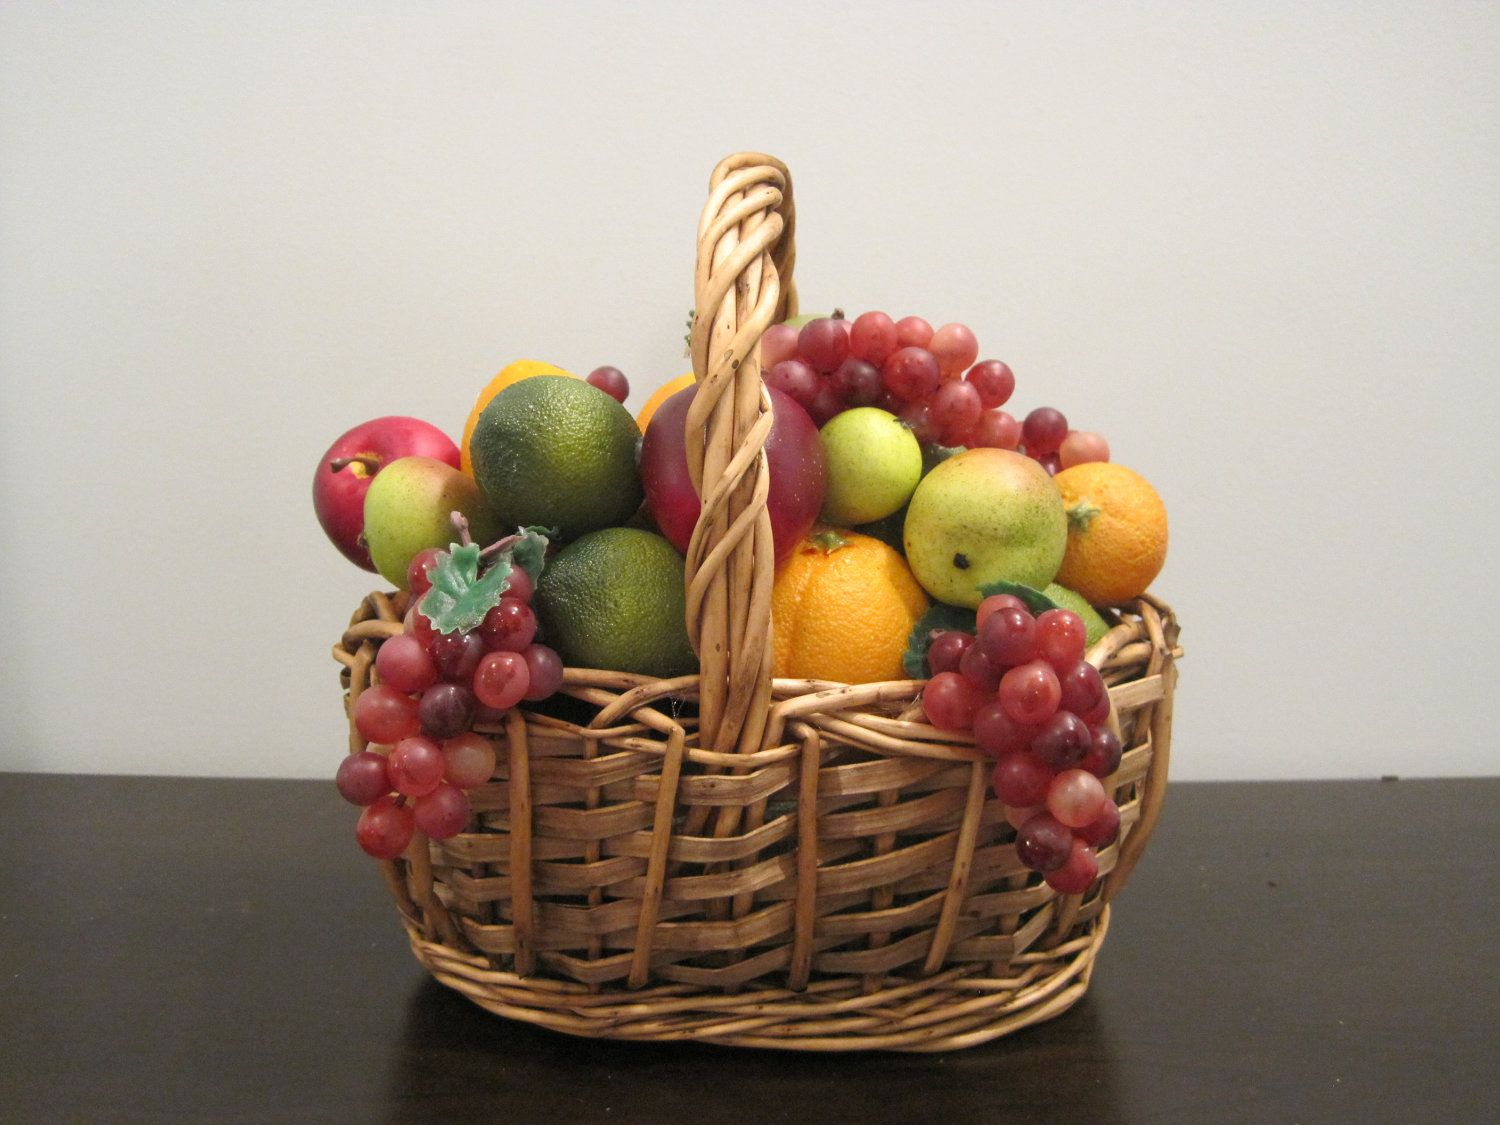 Plastic Fruit Basket On The Kitchen Dining Table When I Was A Ager My Mom Had One Of These And Remember Plucking G Off Chewing Them